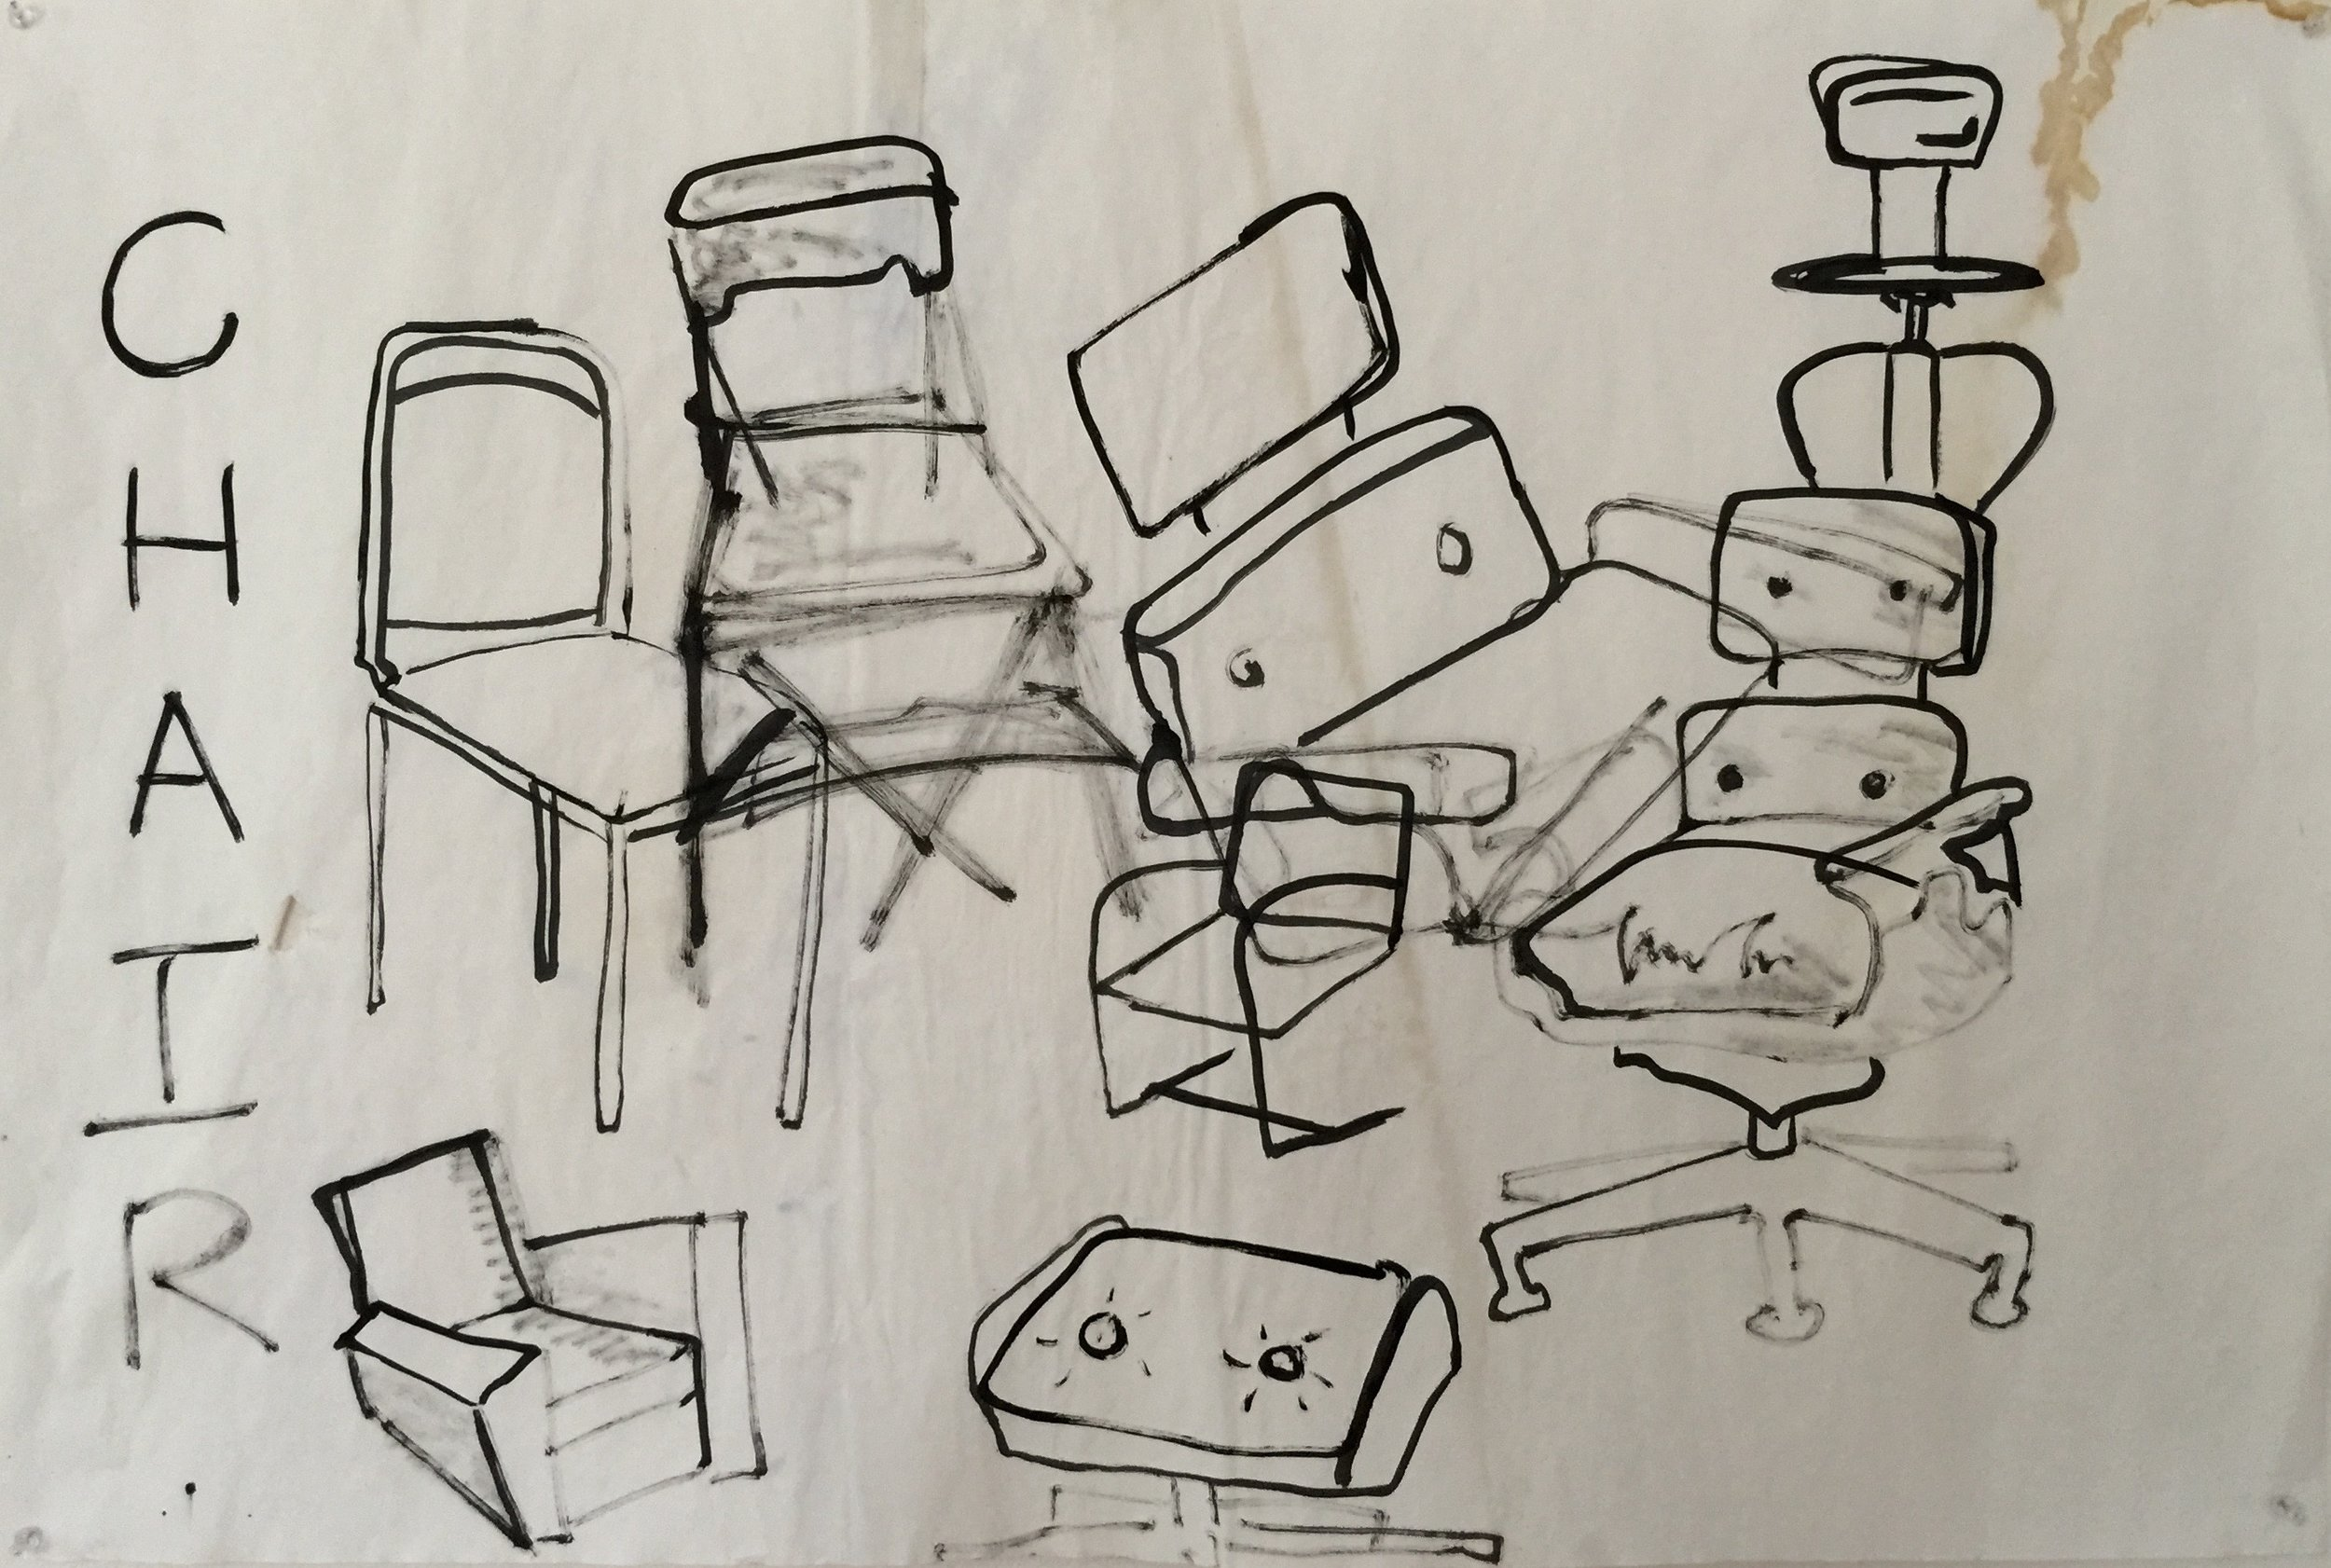 CHAIRS AND STAINS, 2015